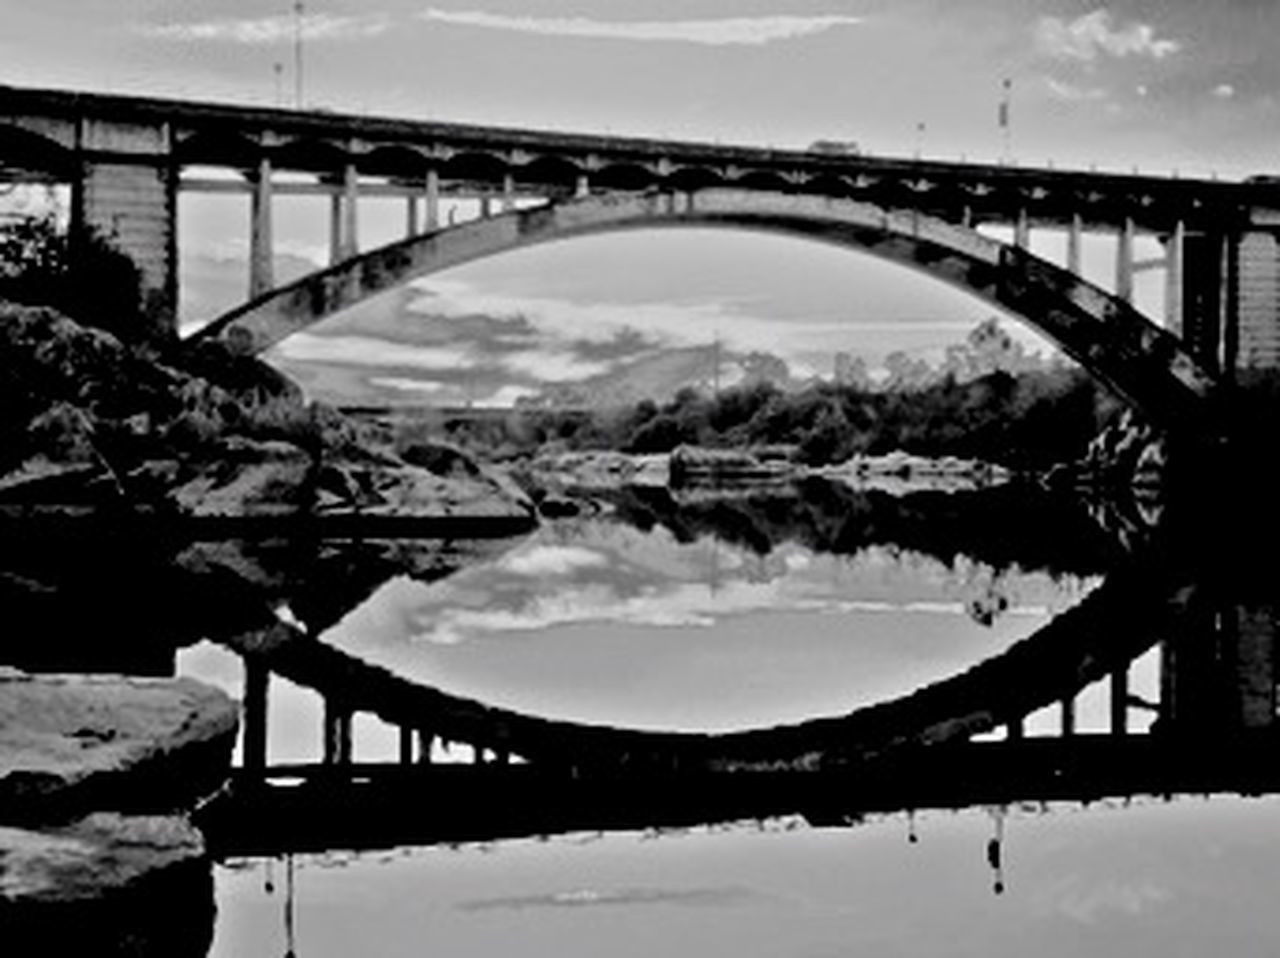 bridge - man made structure, connection, transportation, river, outdoors, day, no people, built structure, water, sky, architecture